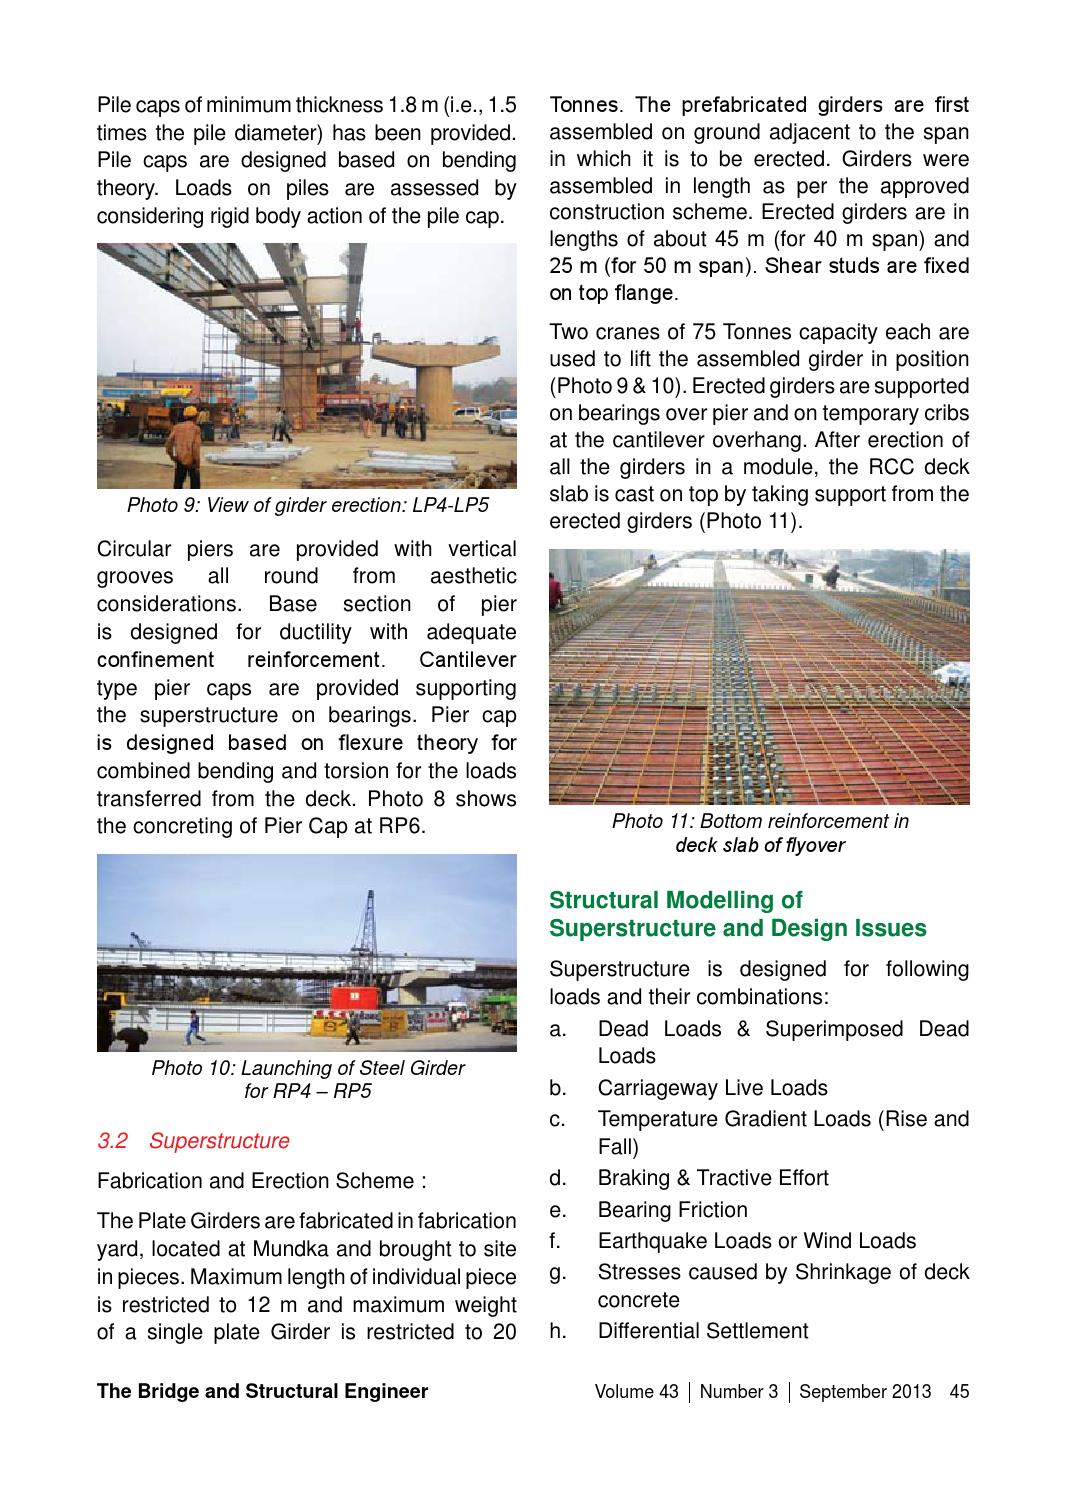 The Bridge & Structural Engineer, September 2013 by IABSE